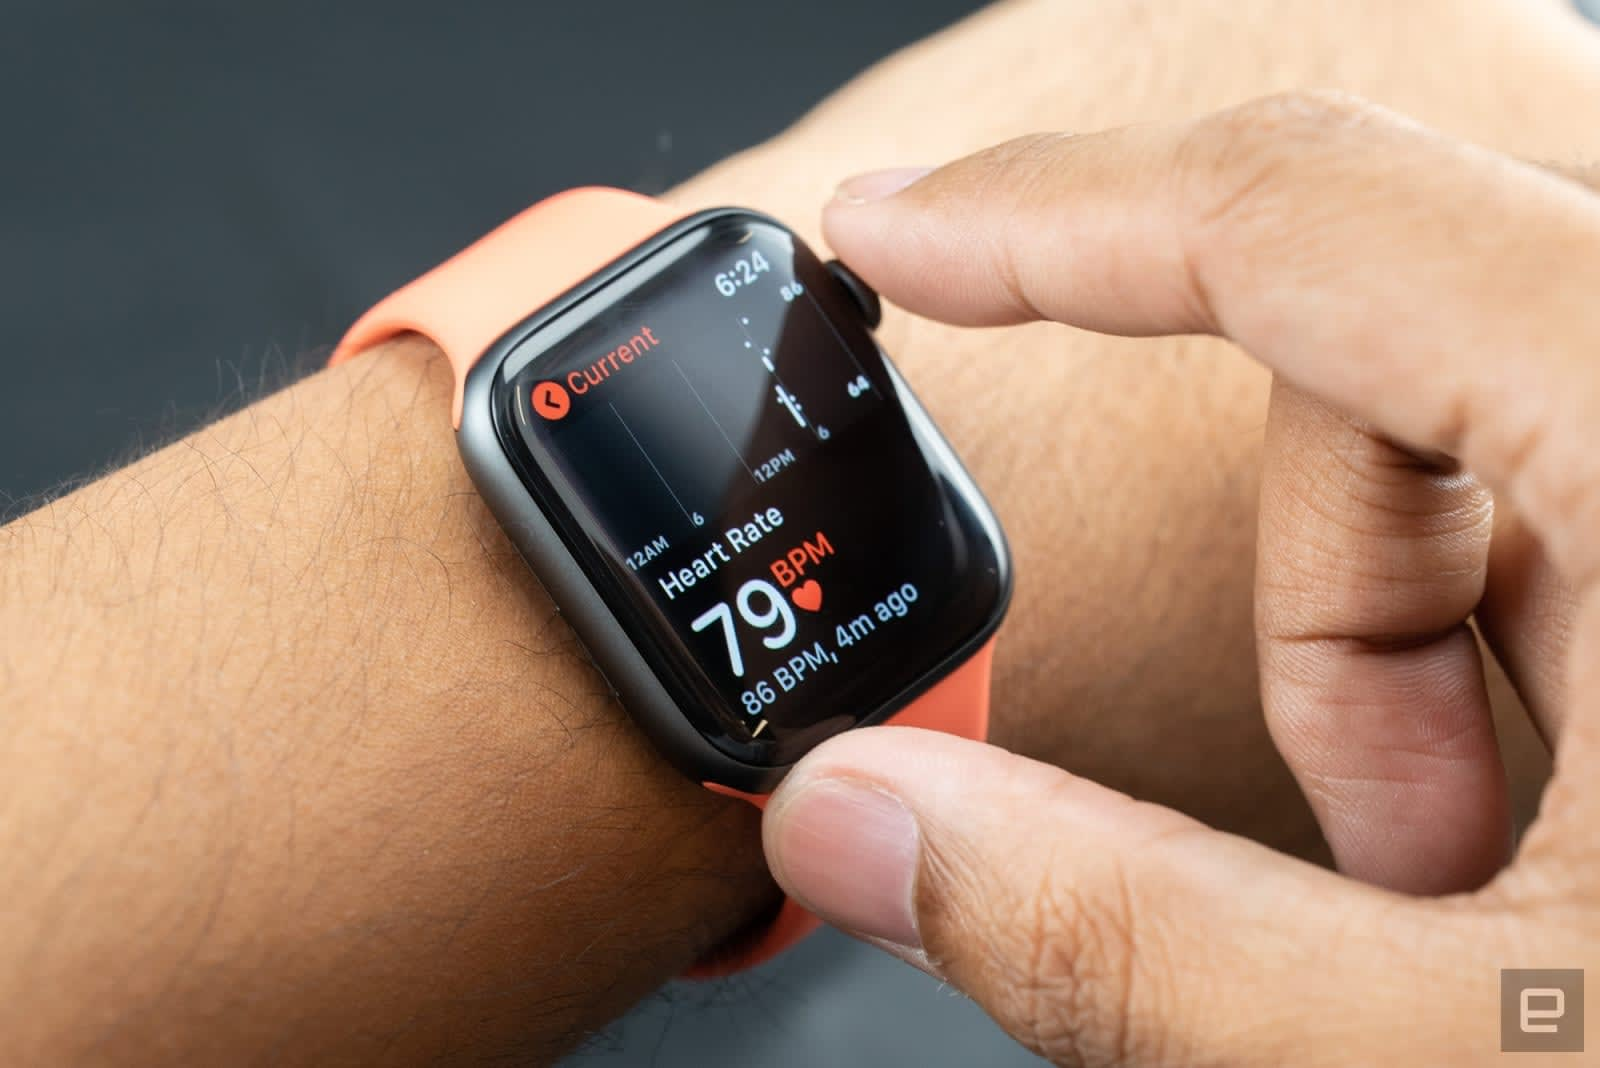 Recommended Reading: The smartwatch EKG